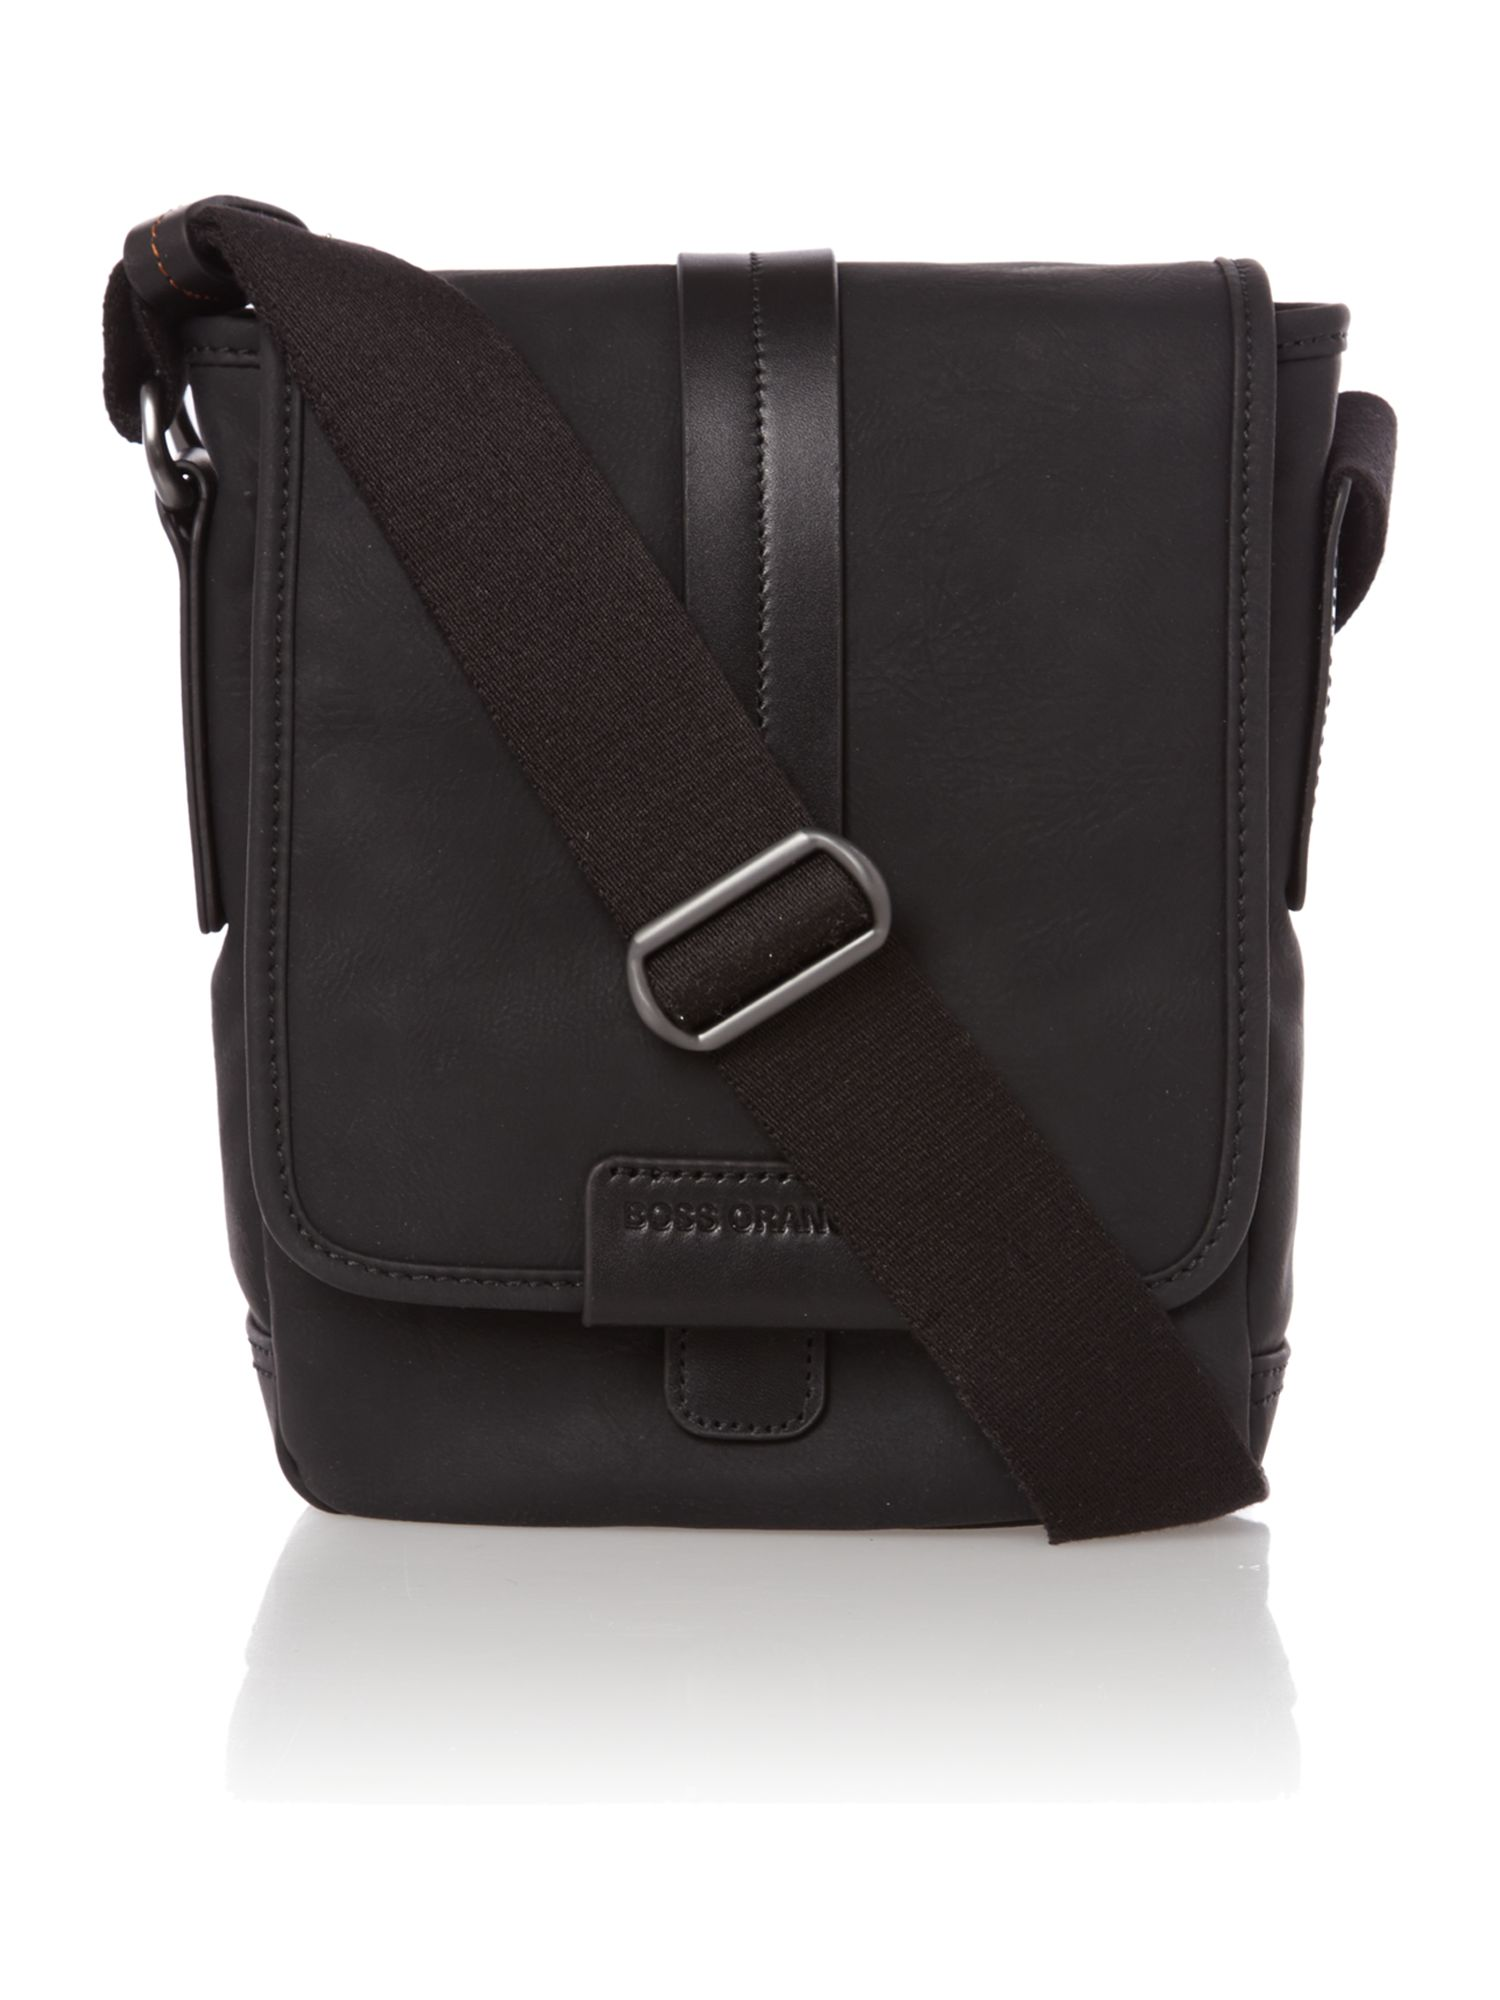 Virtu pouch bag